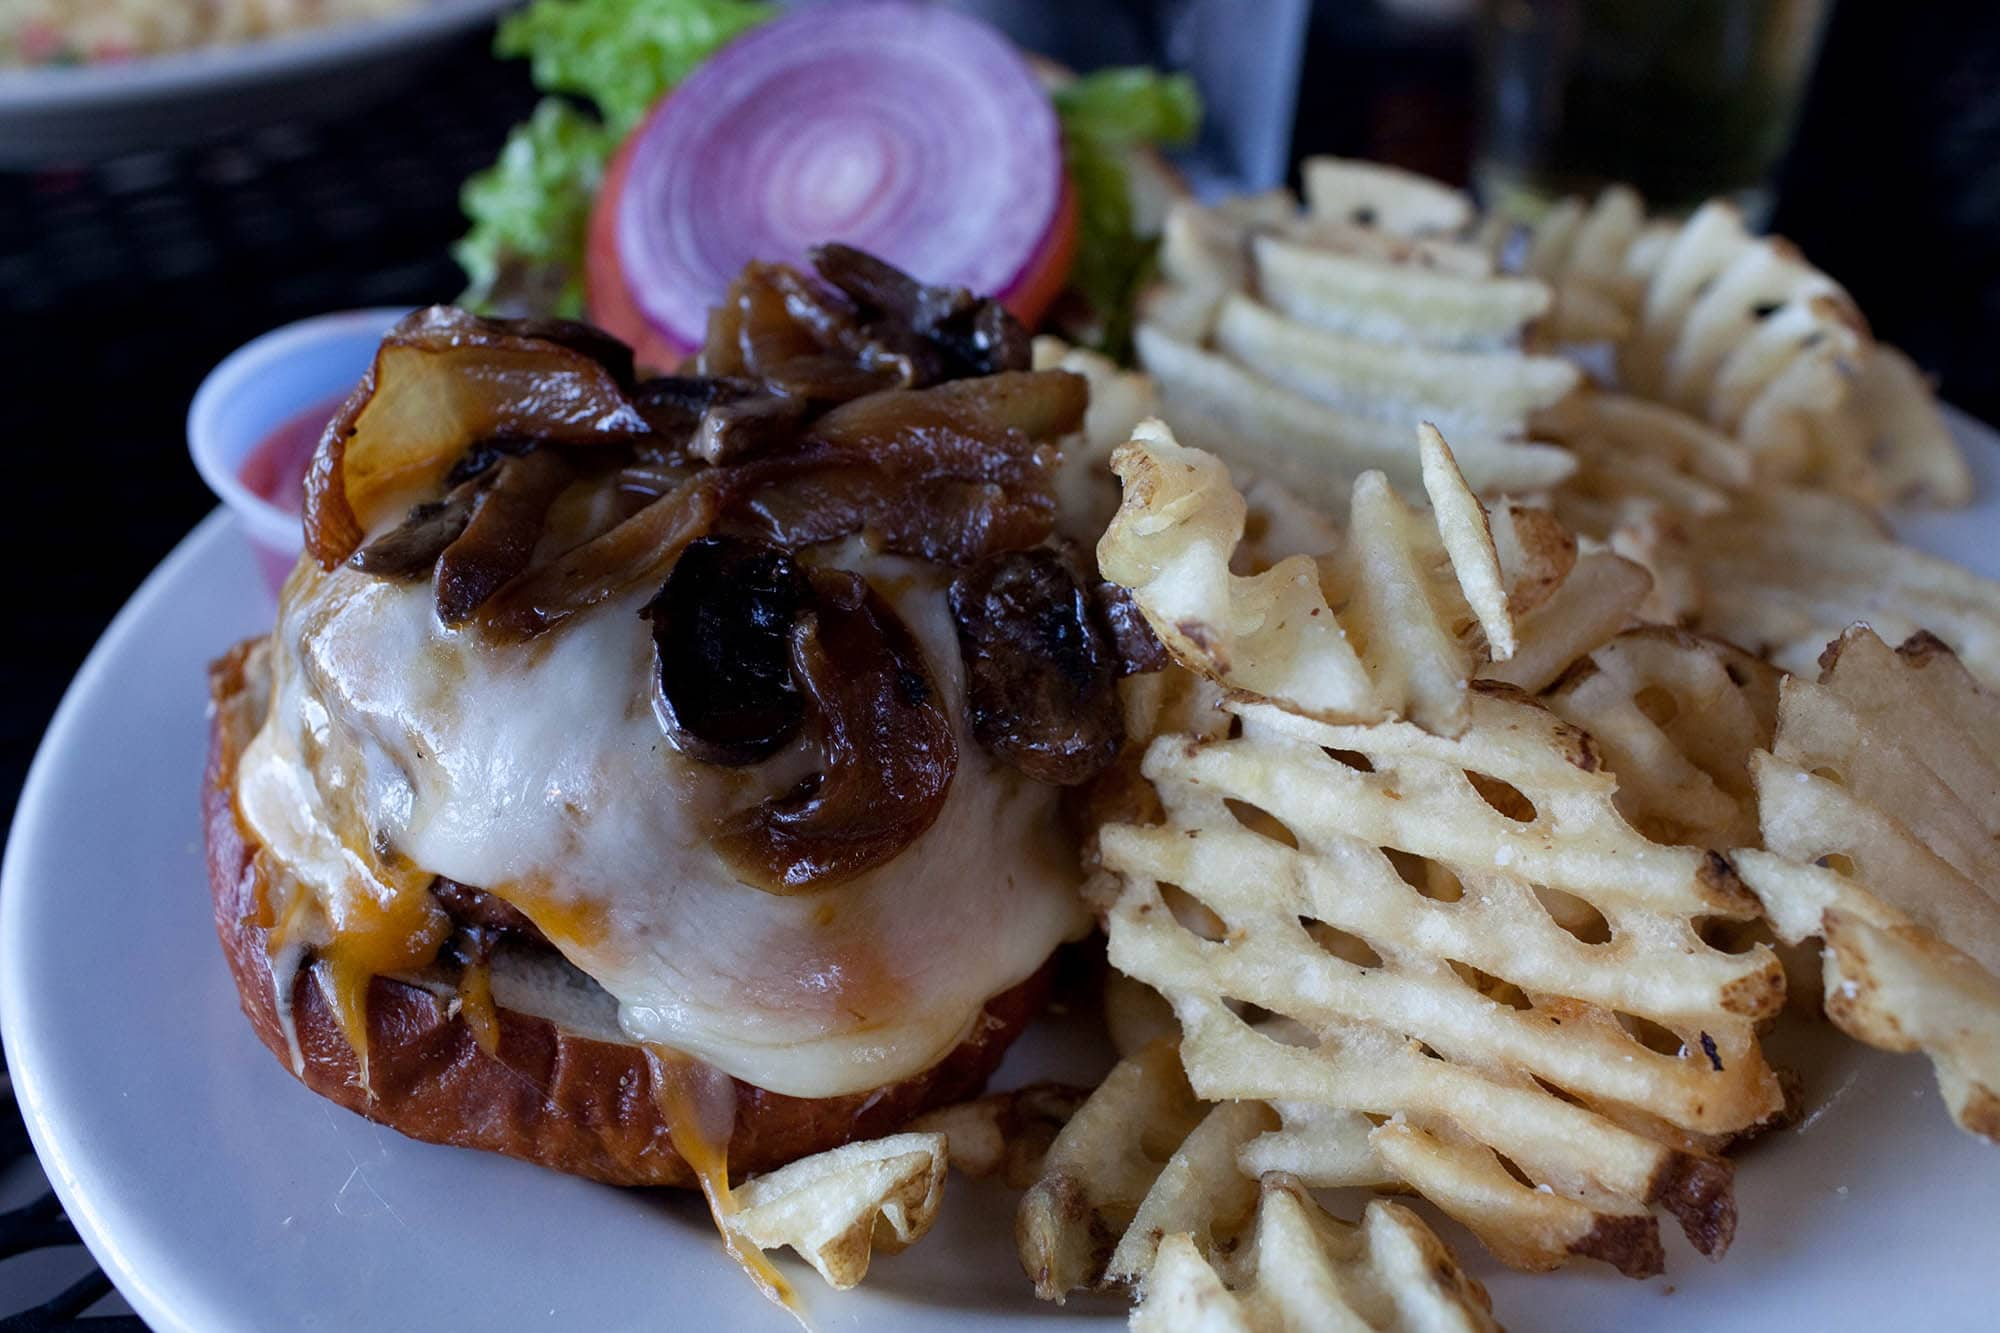 Kuma's Corner - Neurosis burger, that came topped with cheddar, swiss, sautéed mushrooms, caramelized onions, and horseradish mayo